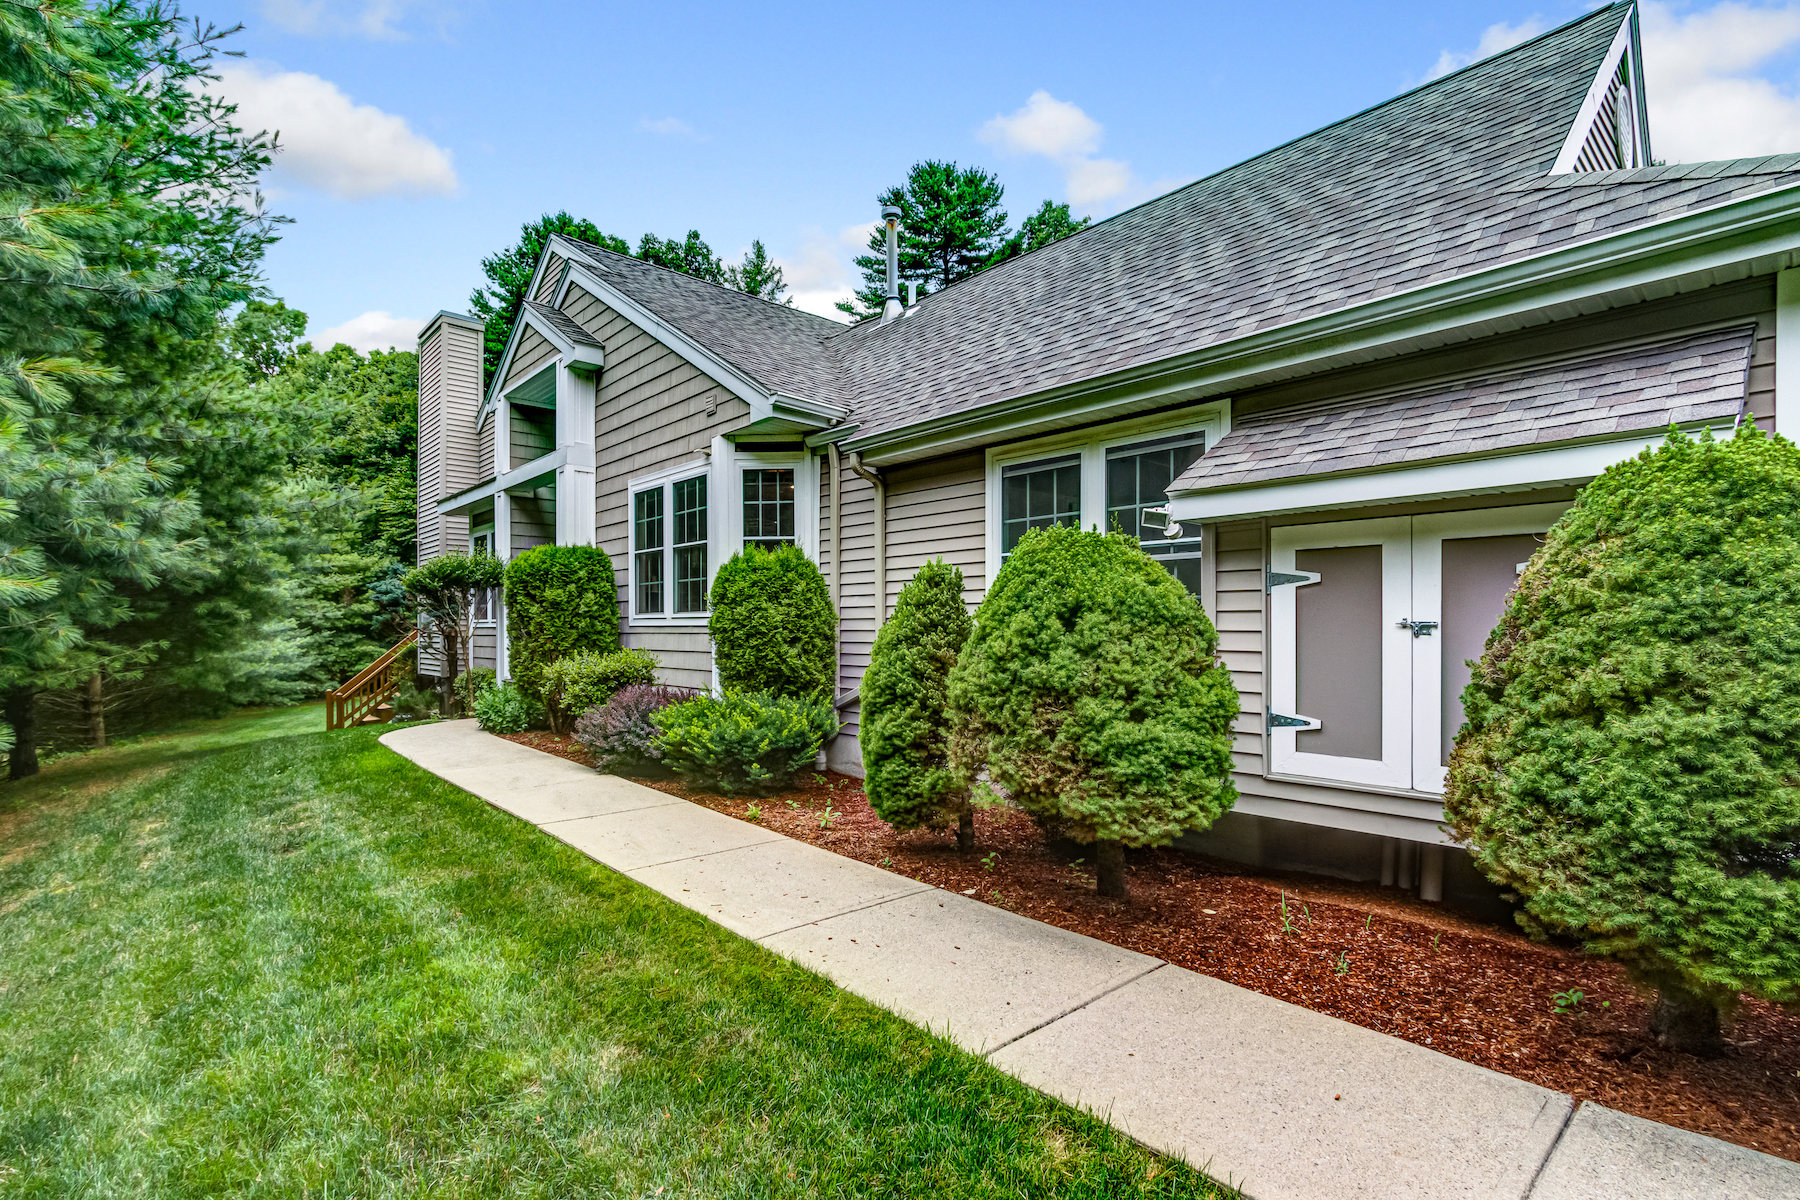 townhouses for Sale at Well Cared For Townhouse - Forest Hills Community 133 Lordvale Blvd, Unit 133 Grafton, Massachusetts 01536 United States